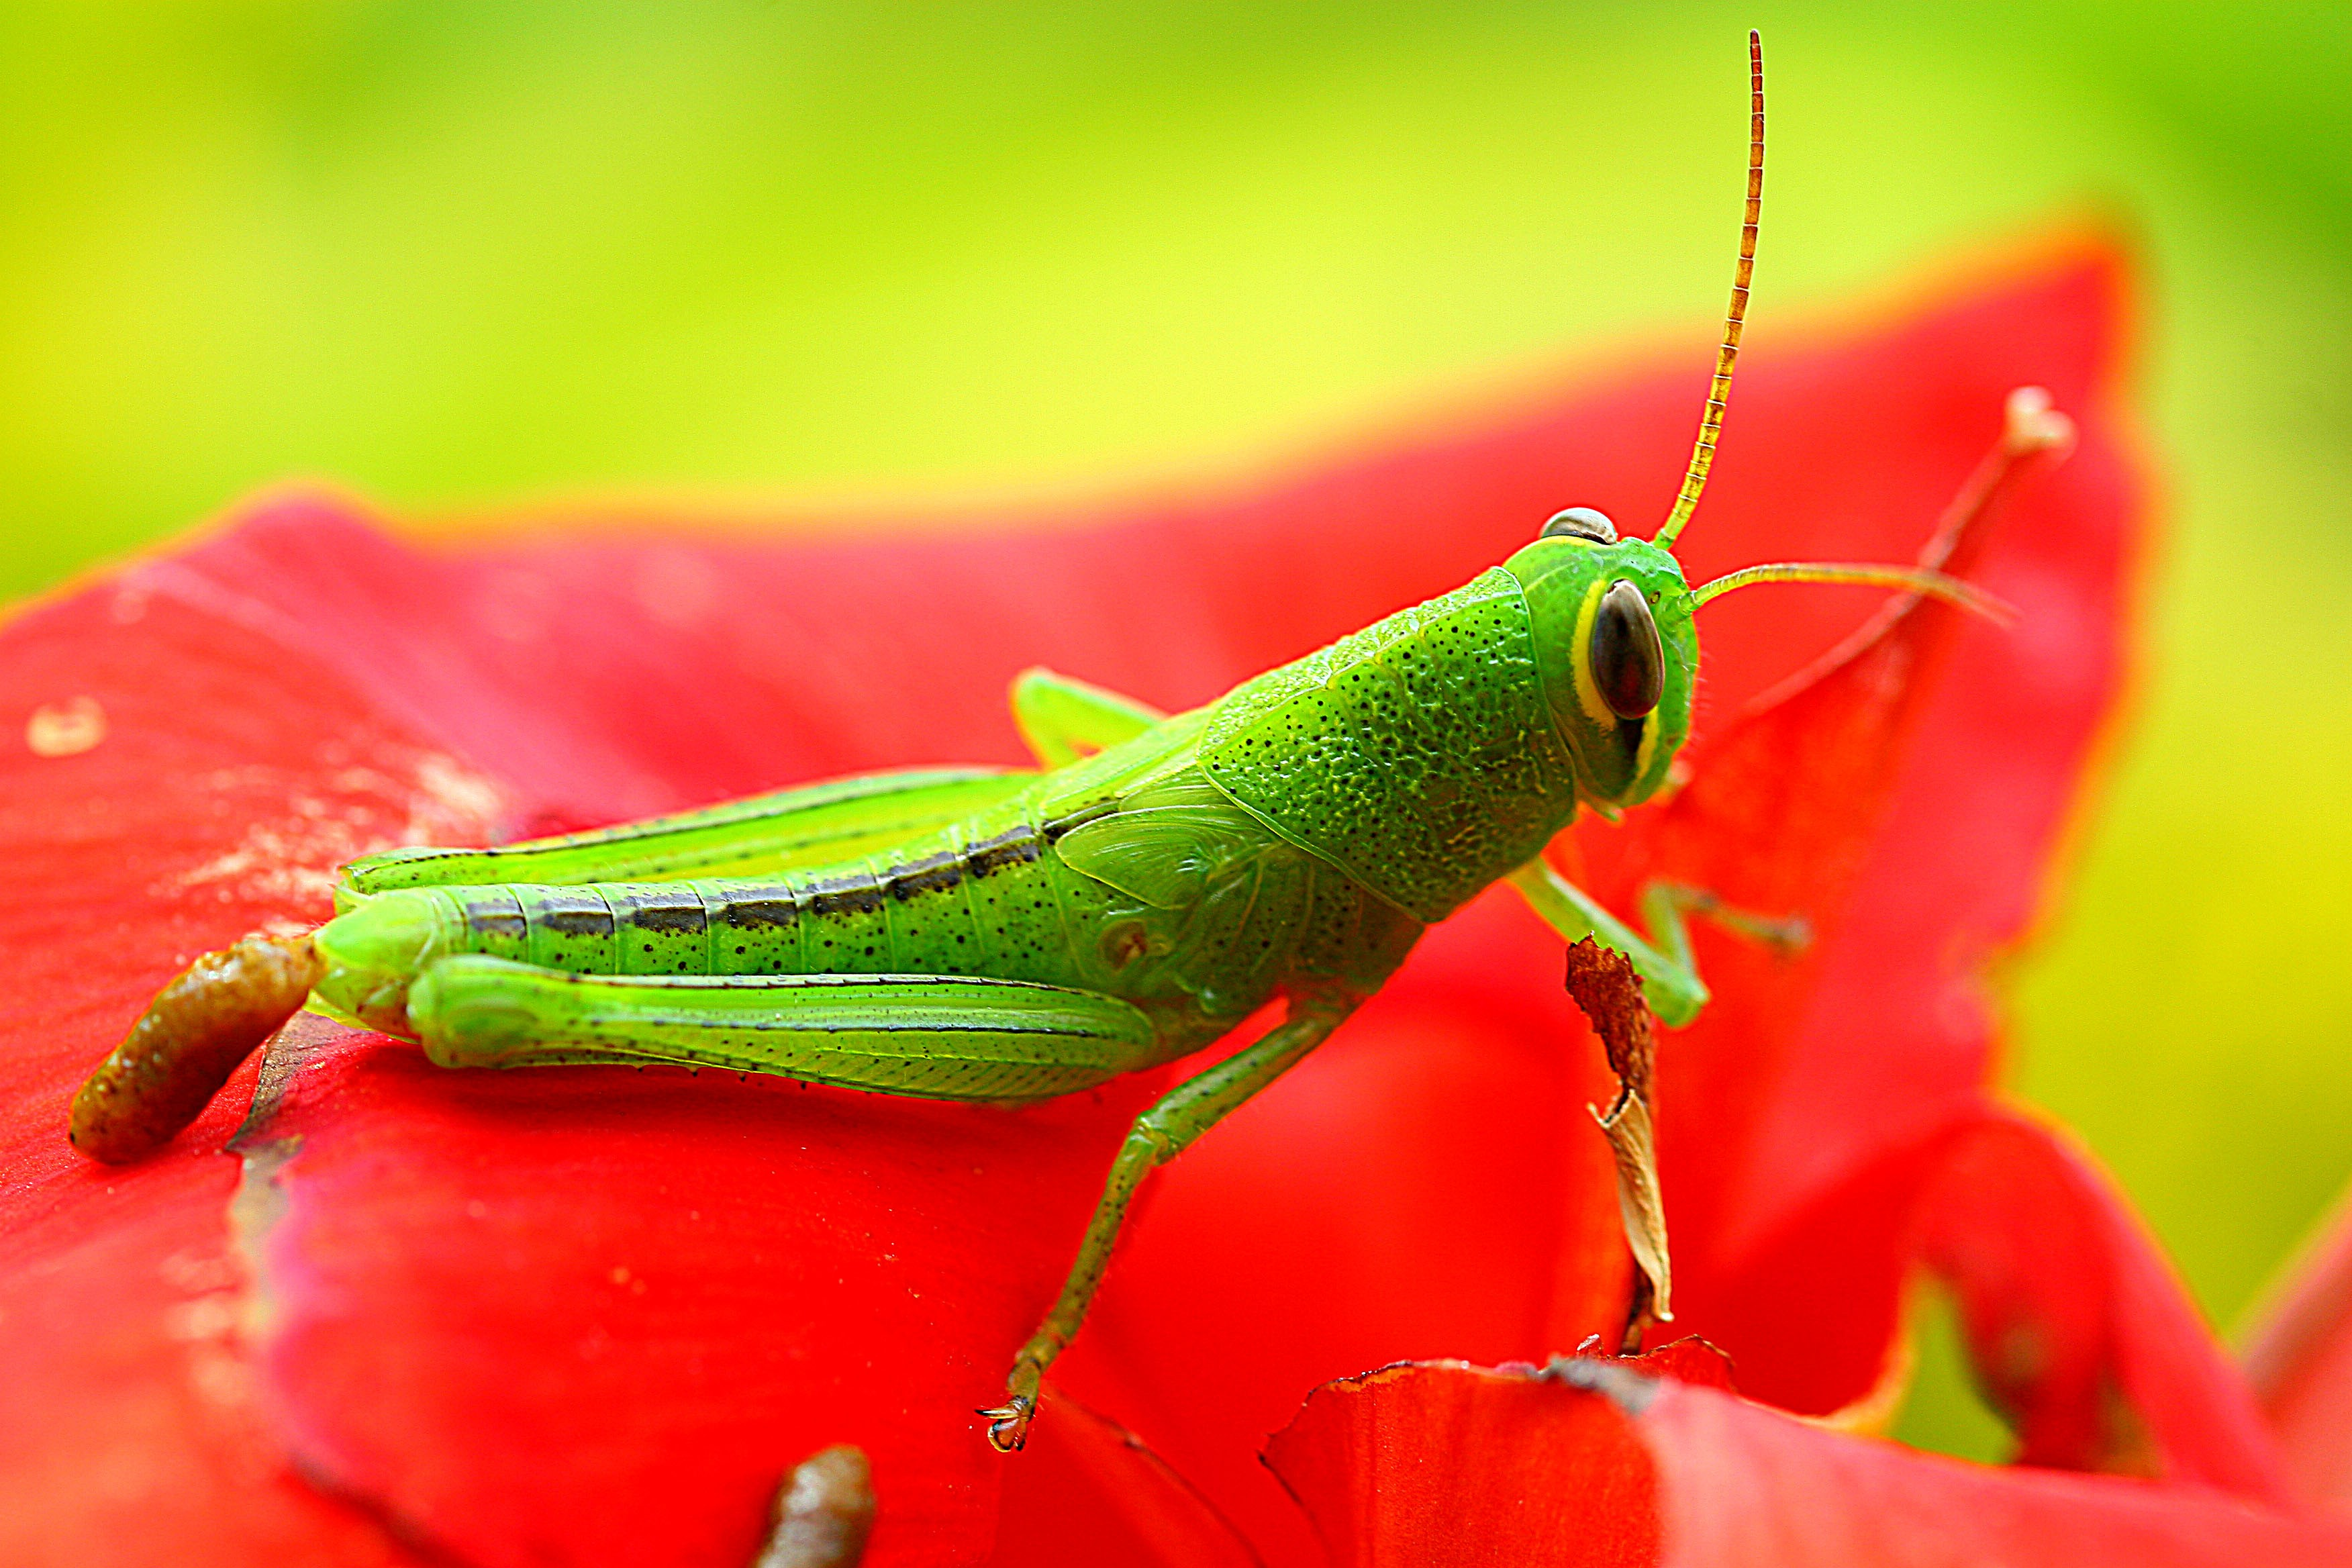 wallpaper grasshopper  grig  green  flower  red  insects